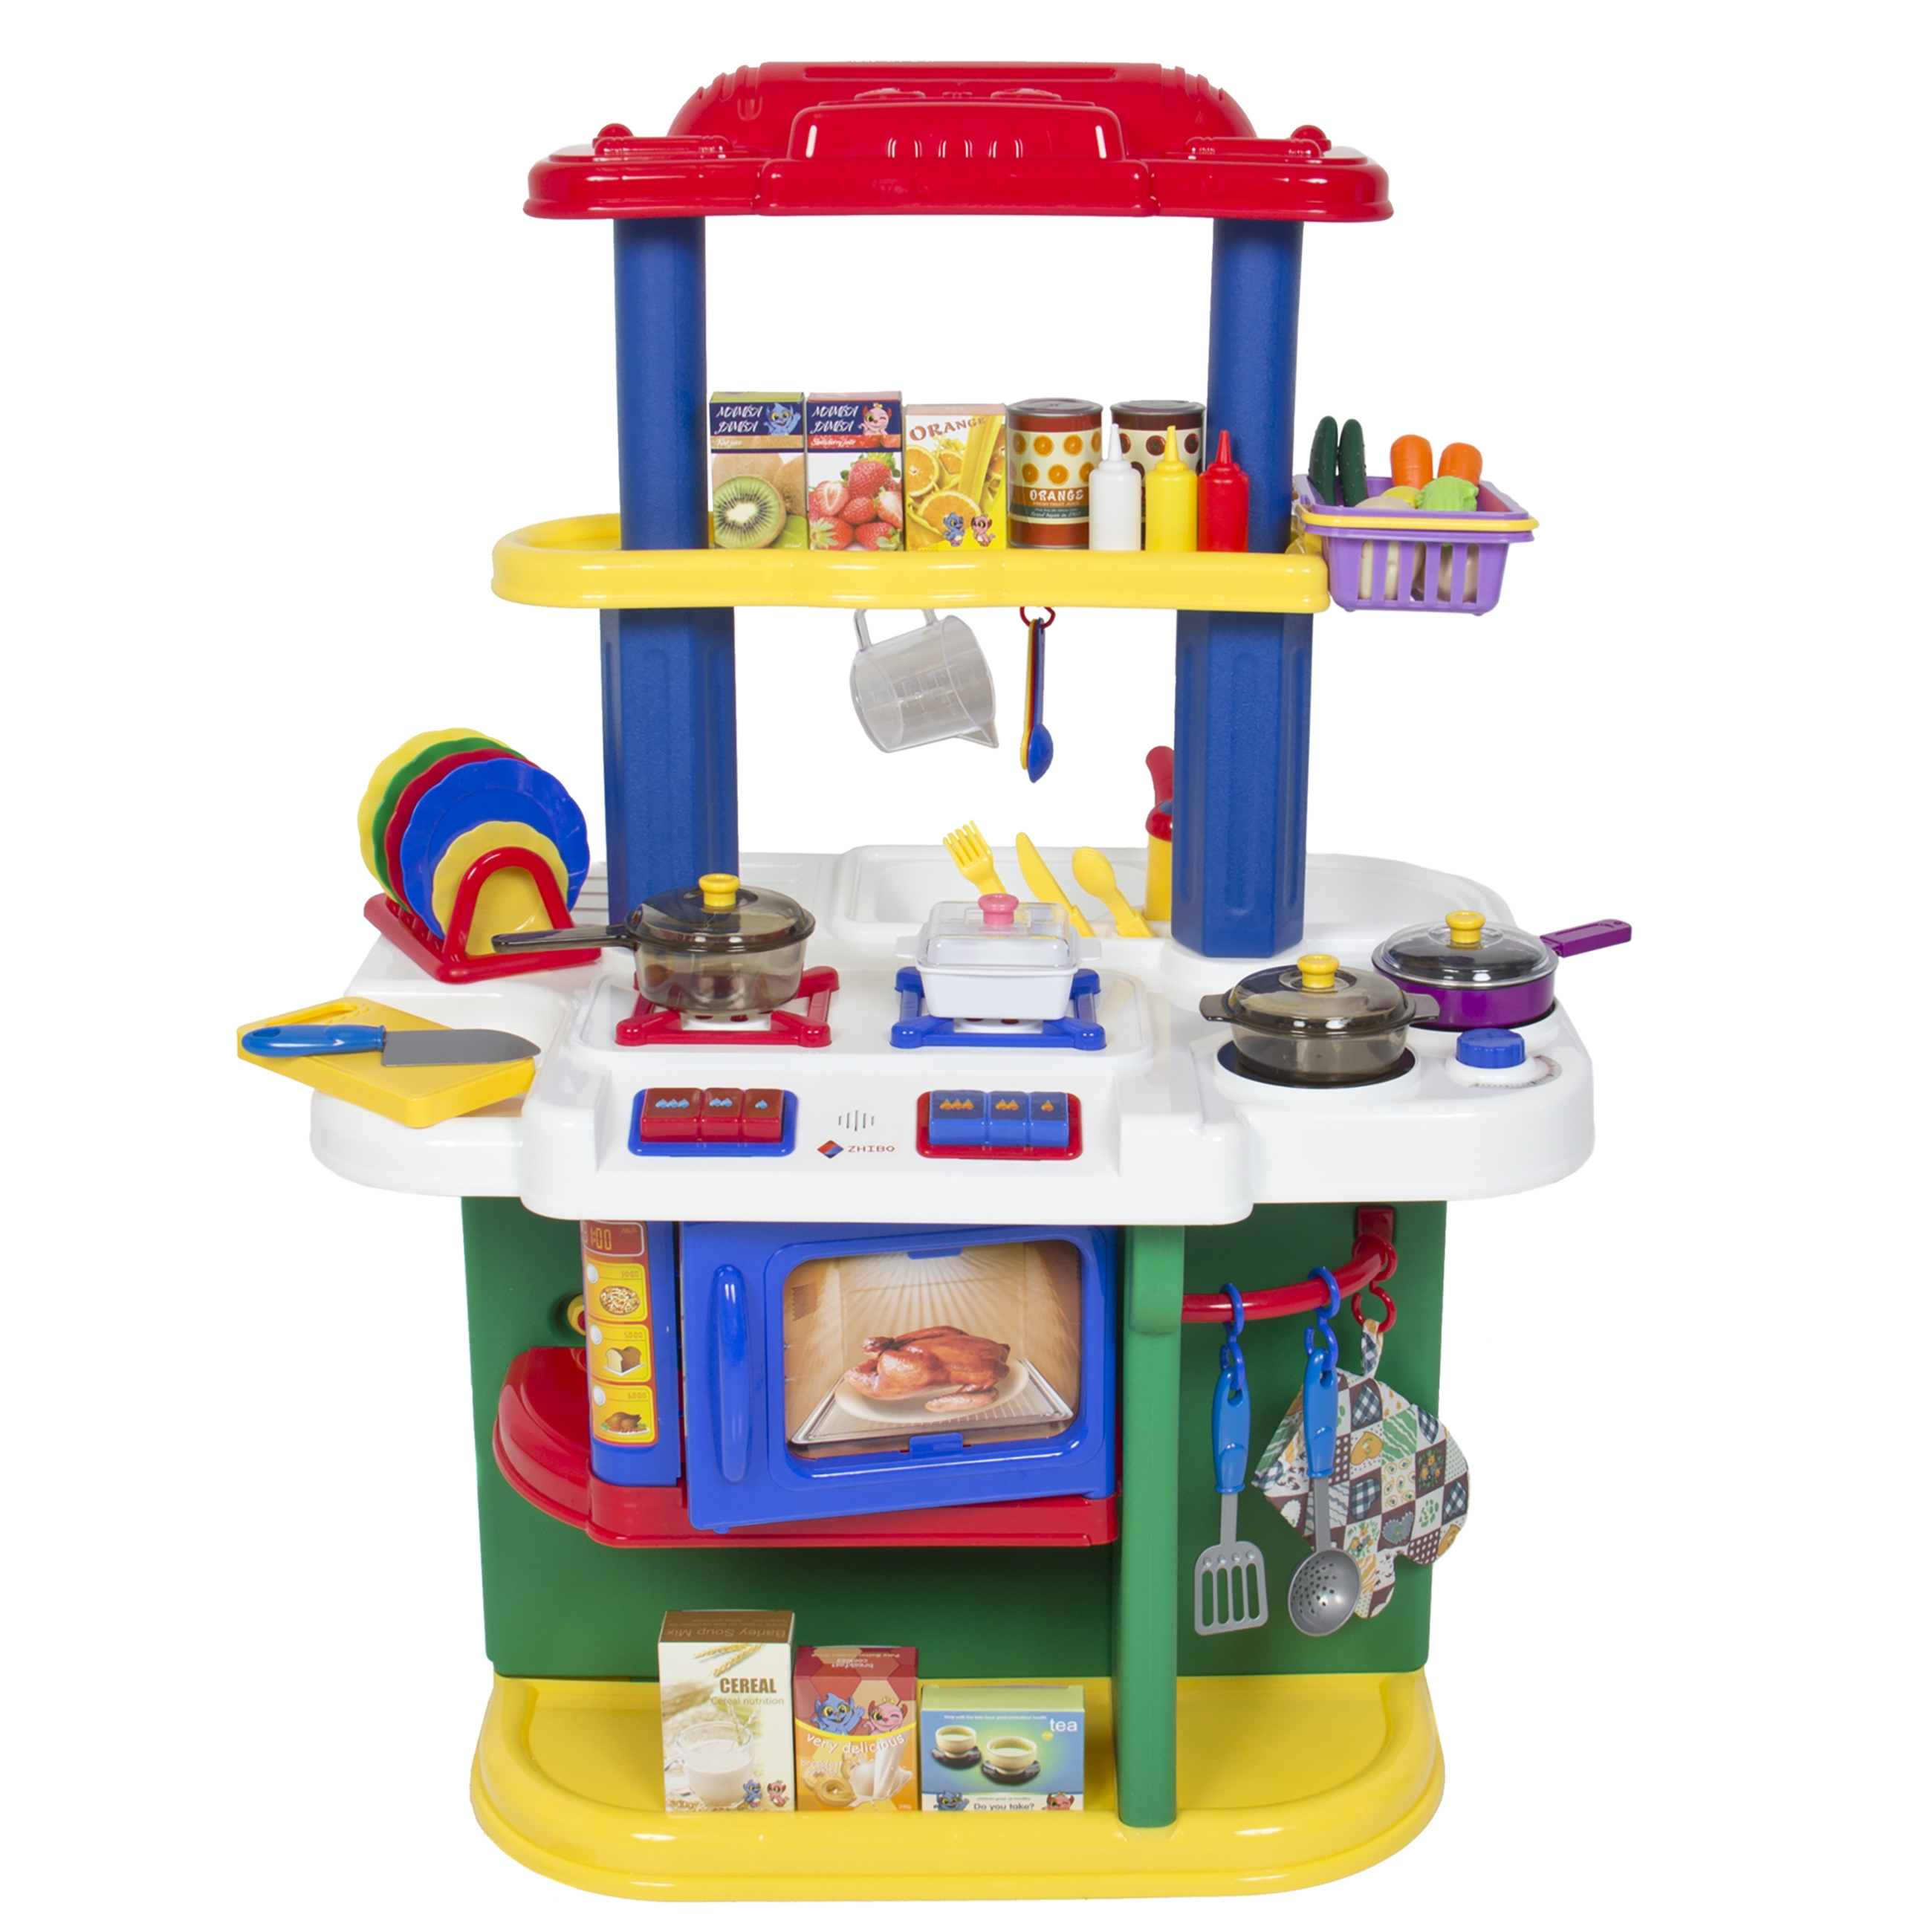 Permalink to Pretend Kitchen Play Sets